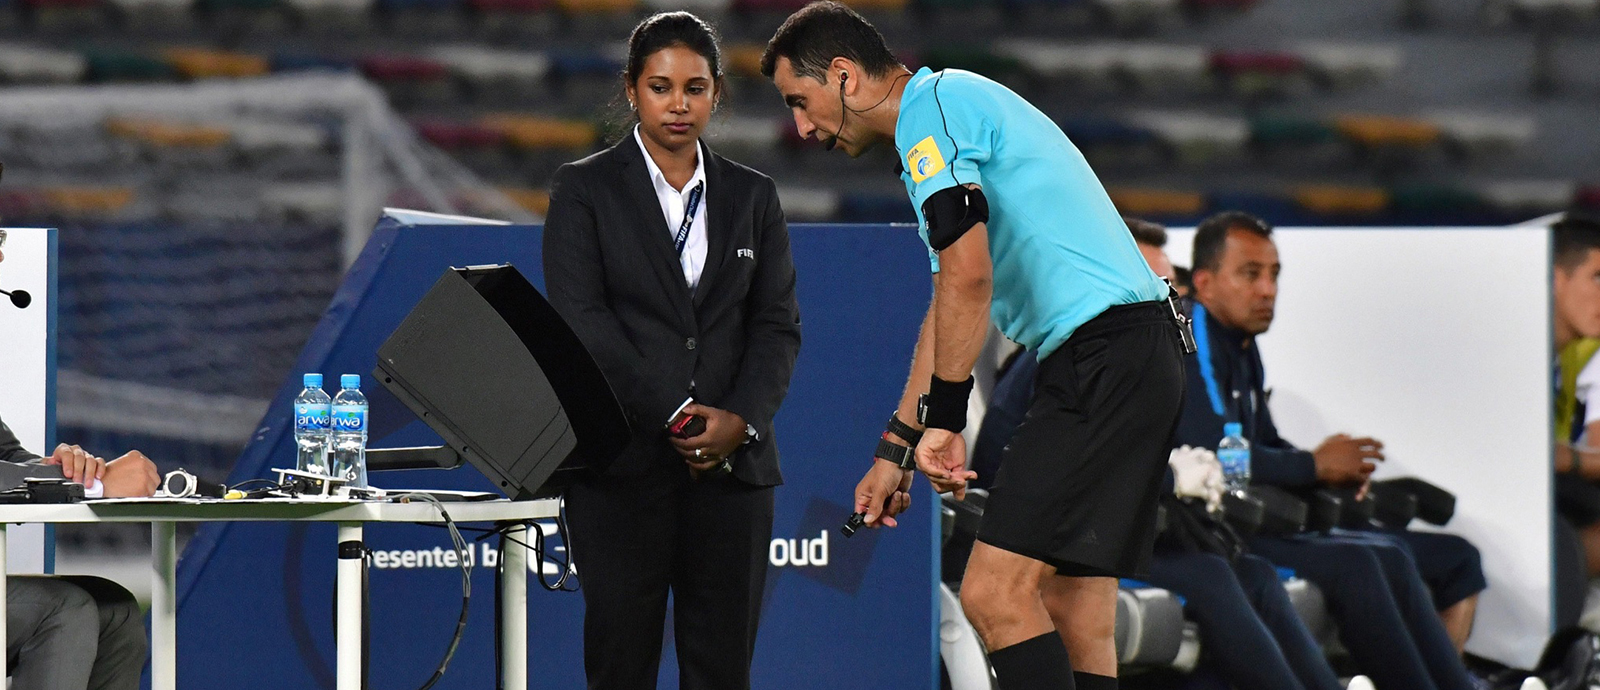 VAR set to make AFC Champions League debut